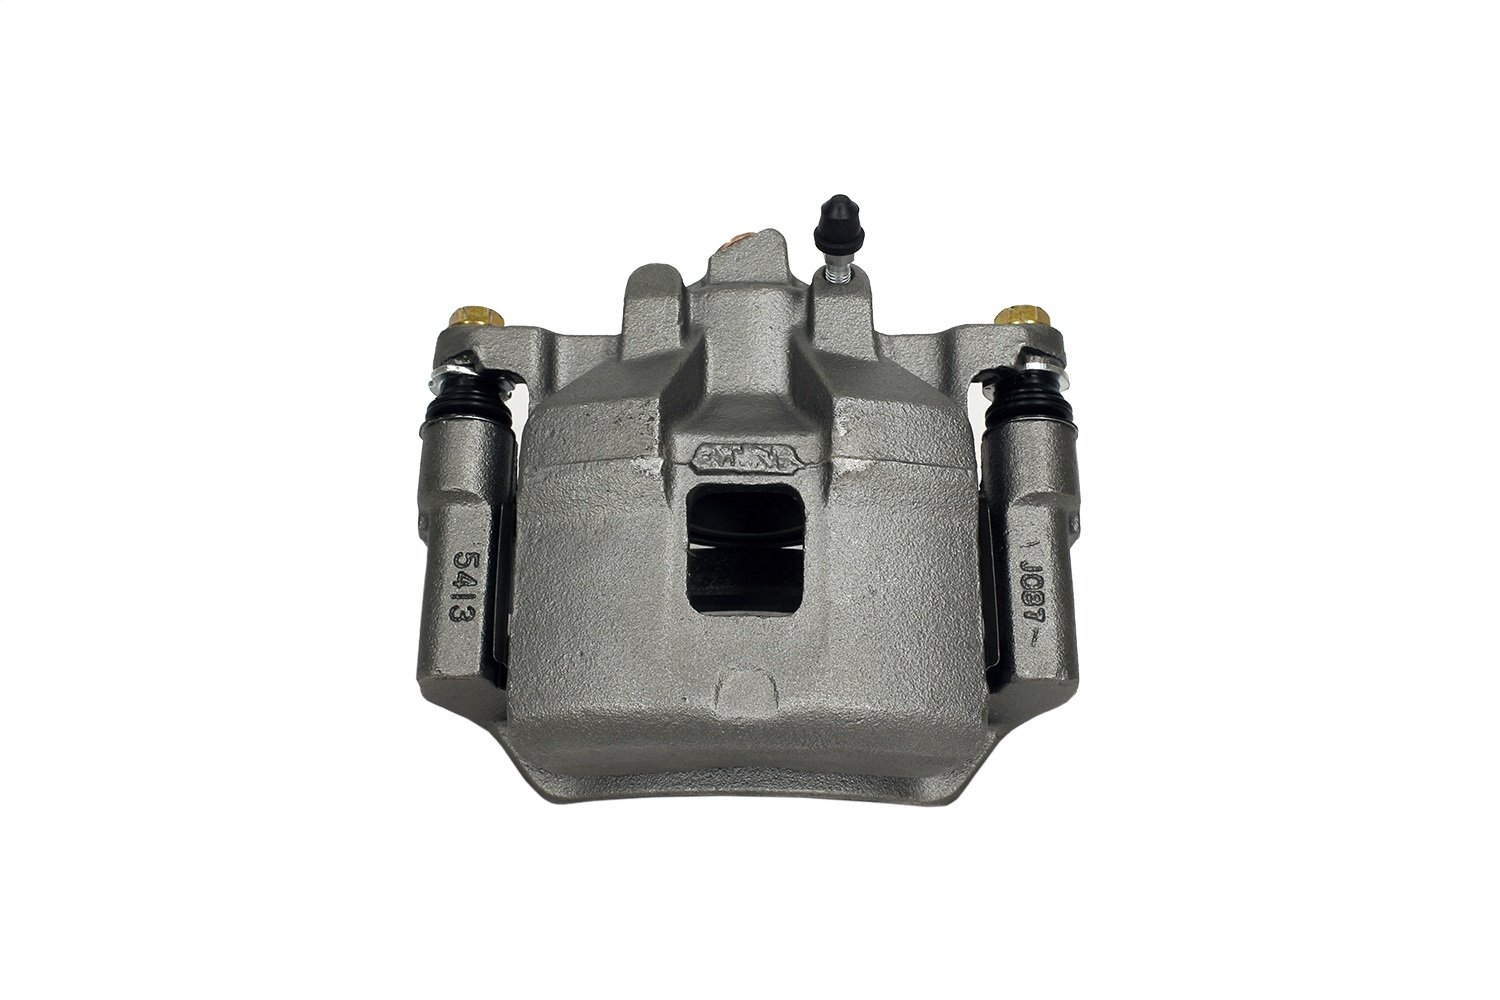 Power Stop L2048 Autospecialty Remanufactured Brake Caliper